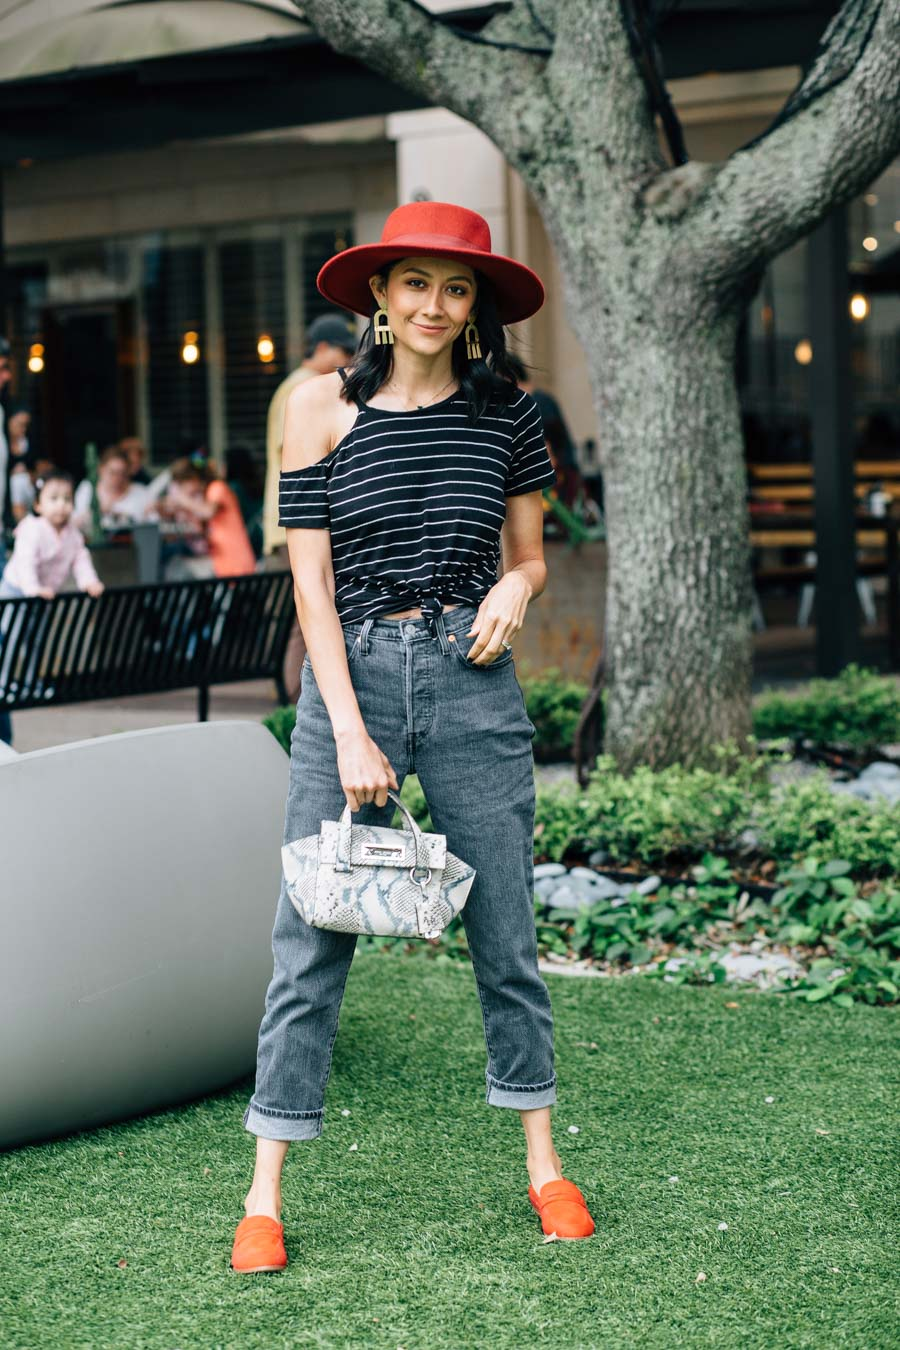 Fashion blogger Lilly Beltran styles Levi's 501 jeans for a casual fall date